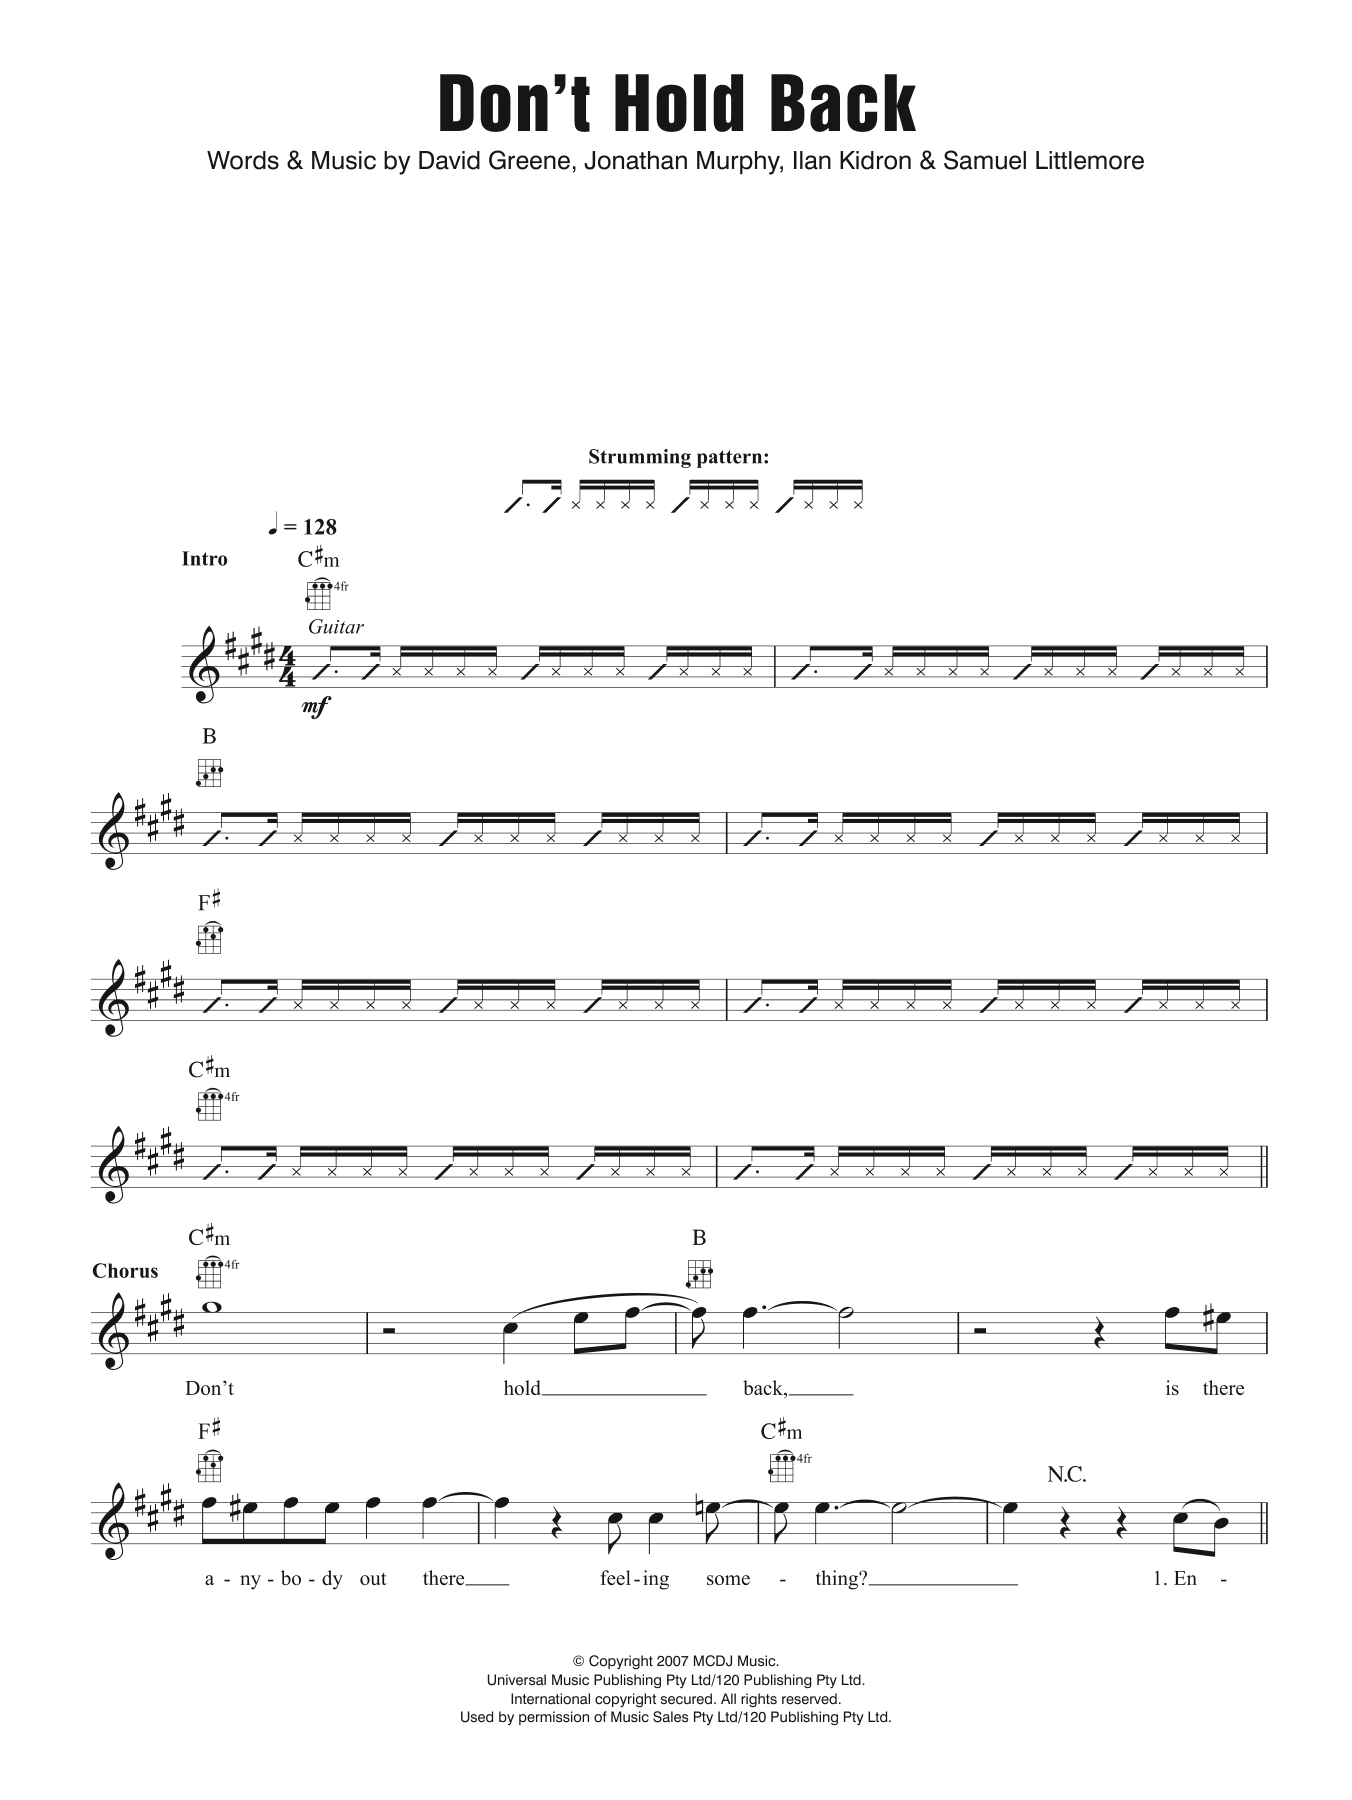 Don't Hold Back Sheet Music